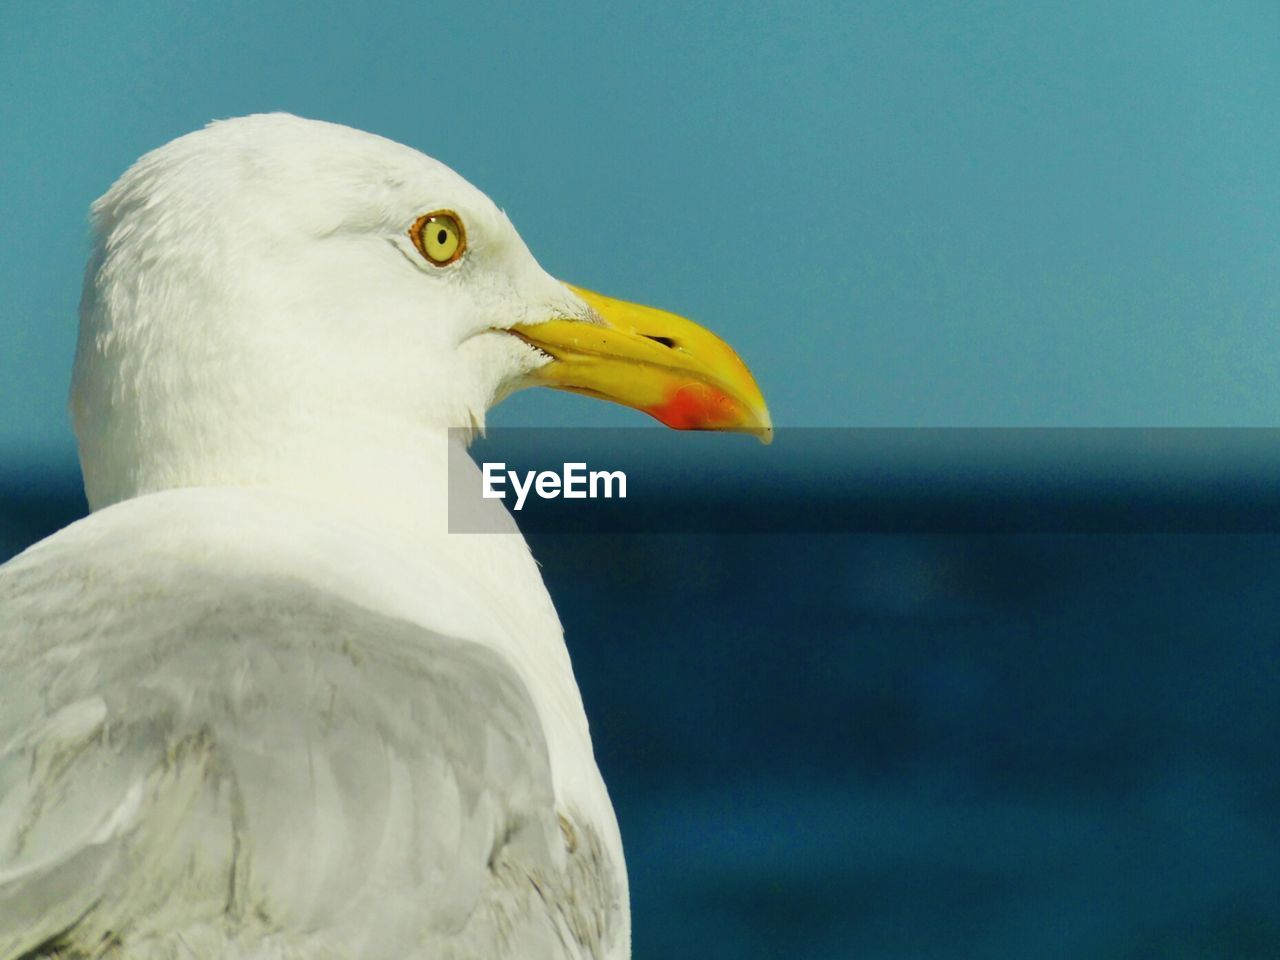 bird, animal themes, animal, vertebrate, animal wildlife, animals in the wild, one animal, close-up, focus on foreground, seagull, day, no people, nature, beak, white color, sea, water, yellow, outdoors, animal head, eagle, profile view